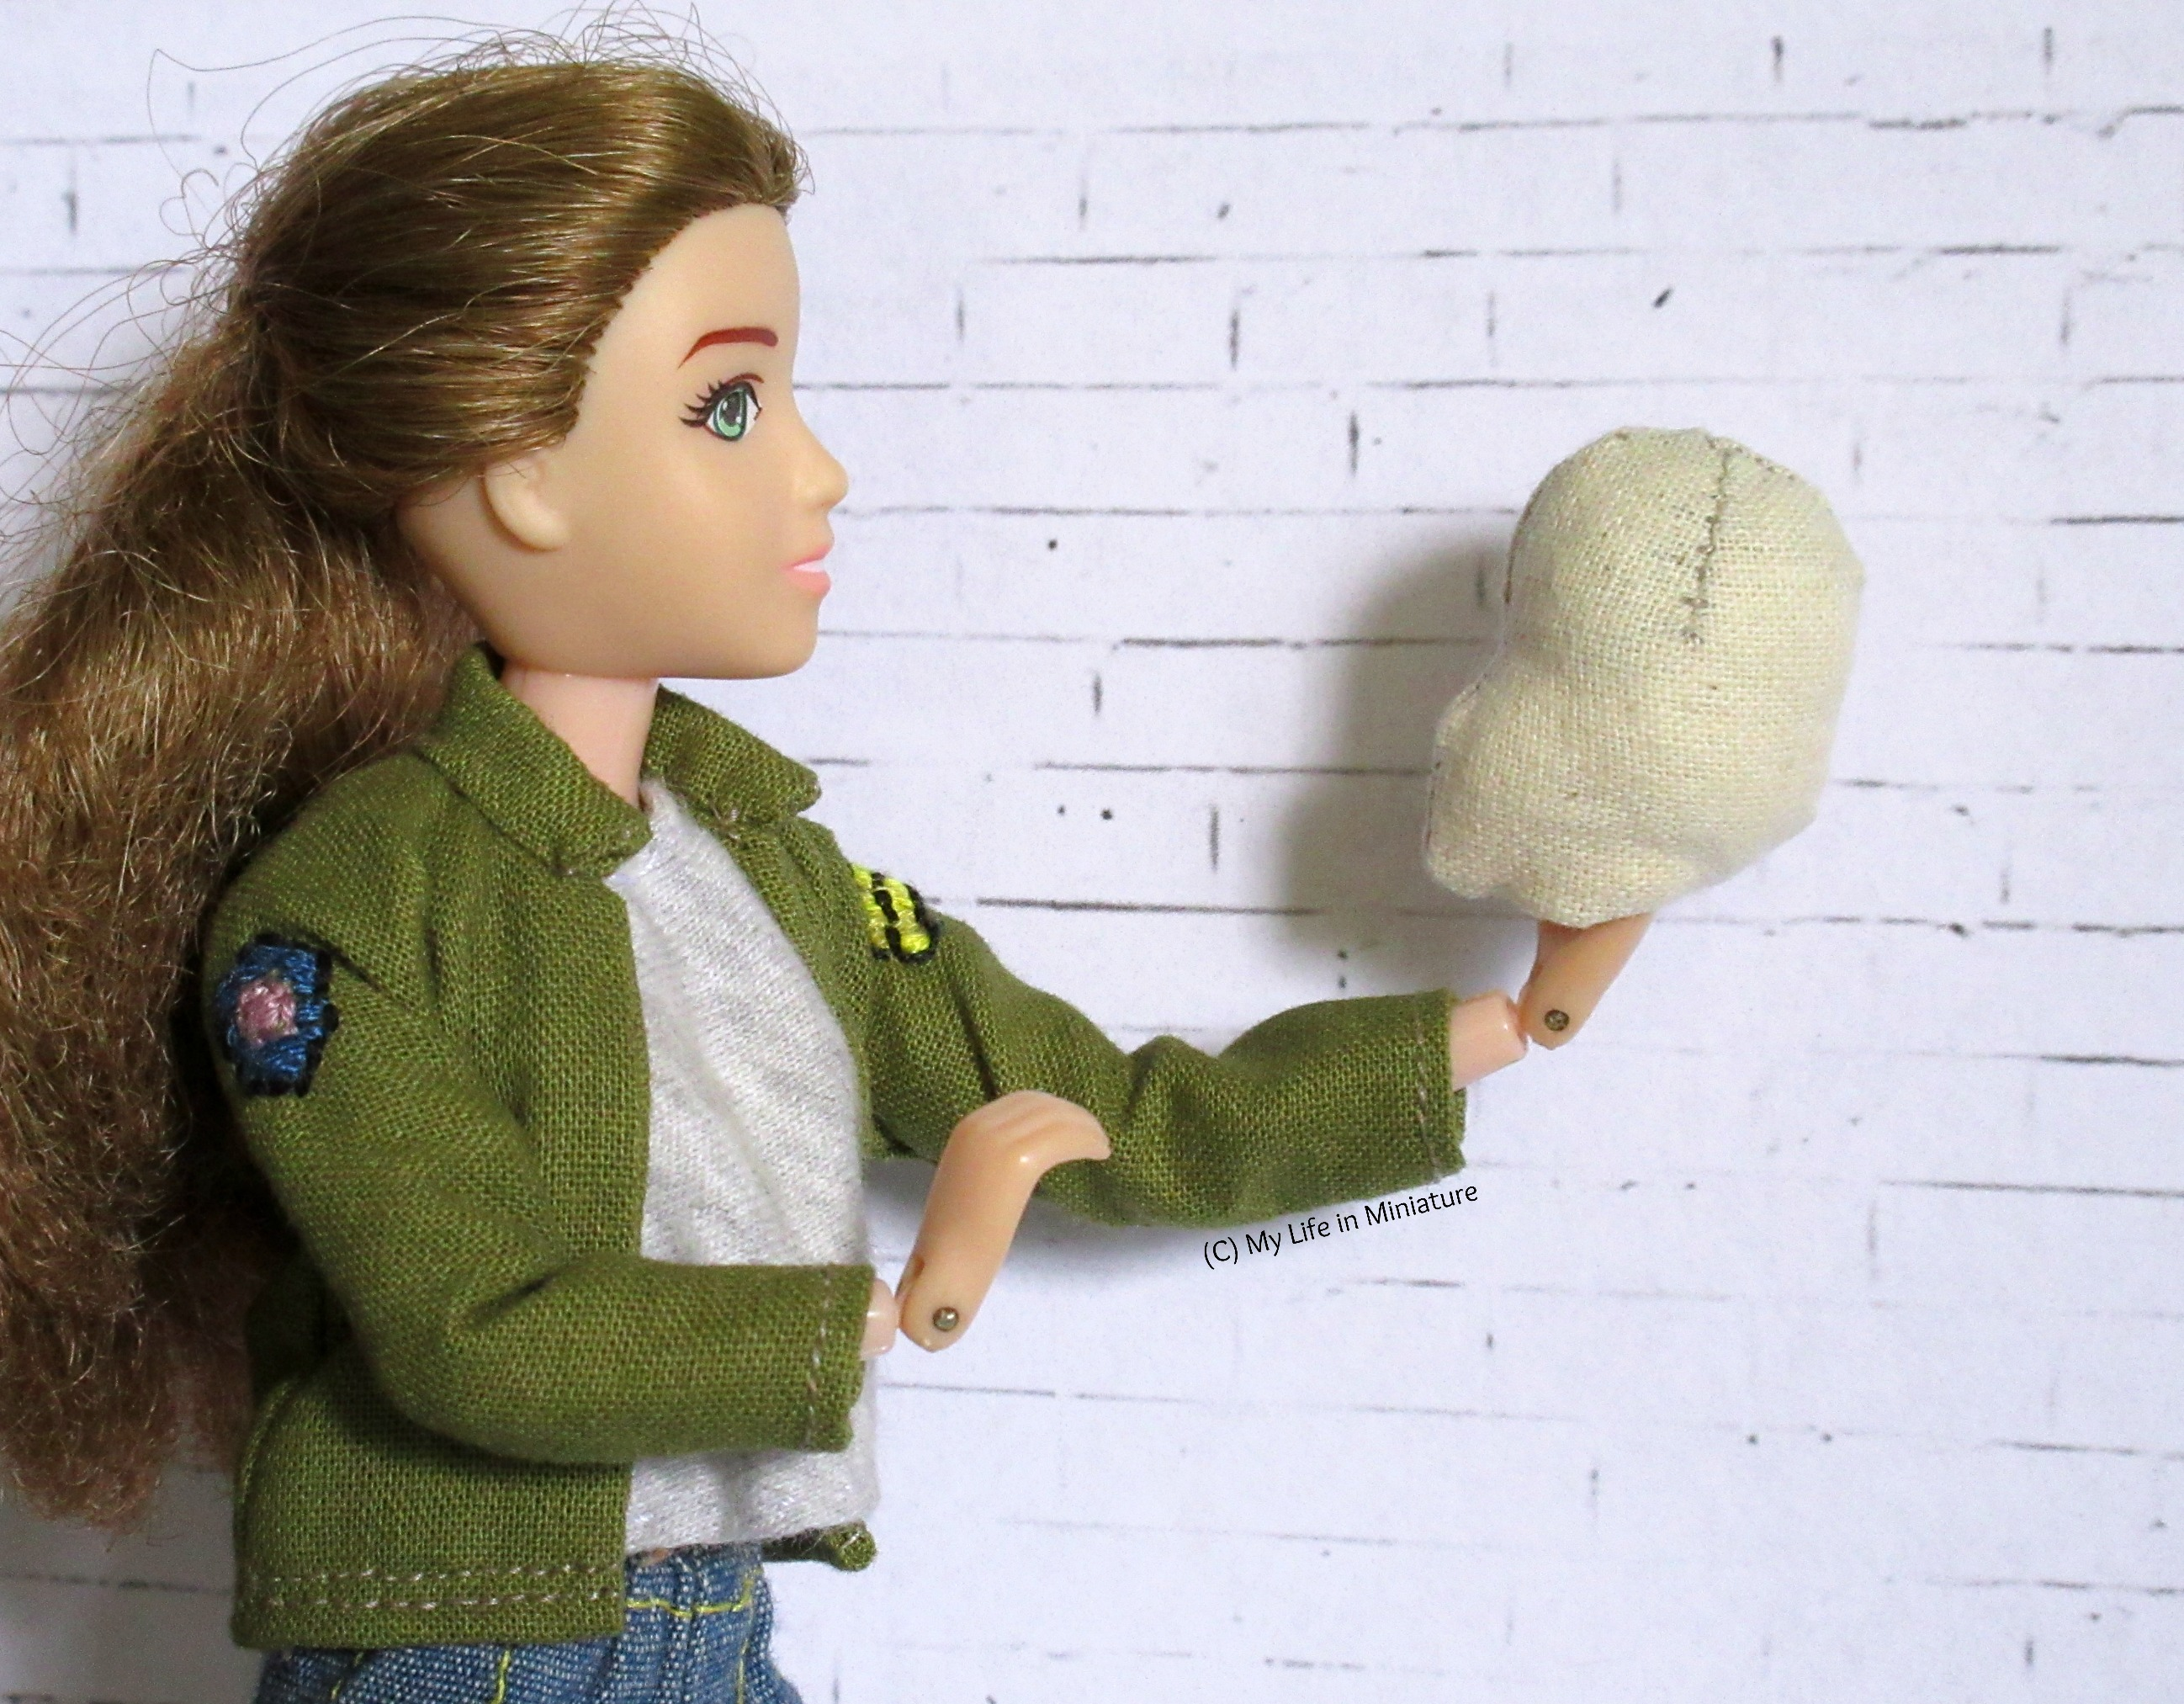 Sarah holds the stuffed head of the muslin doll in one hand. She holds it out away from herself, with the head looking back at her. She looks at the head. The whole pose is reminiscent of Hamlet.